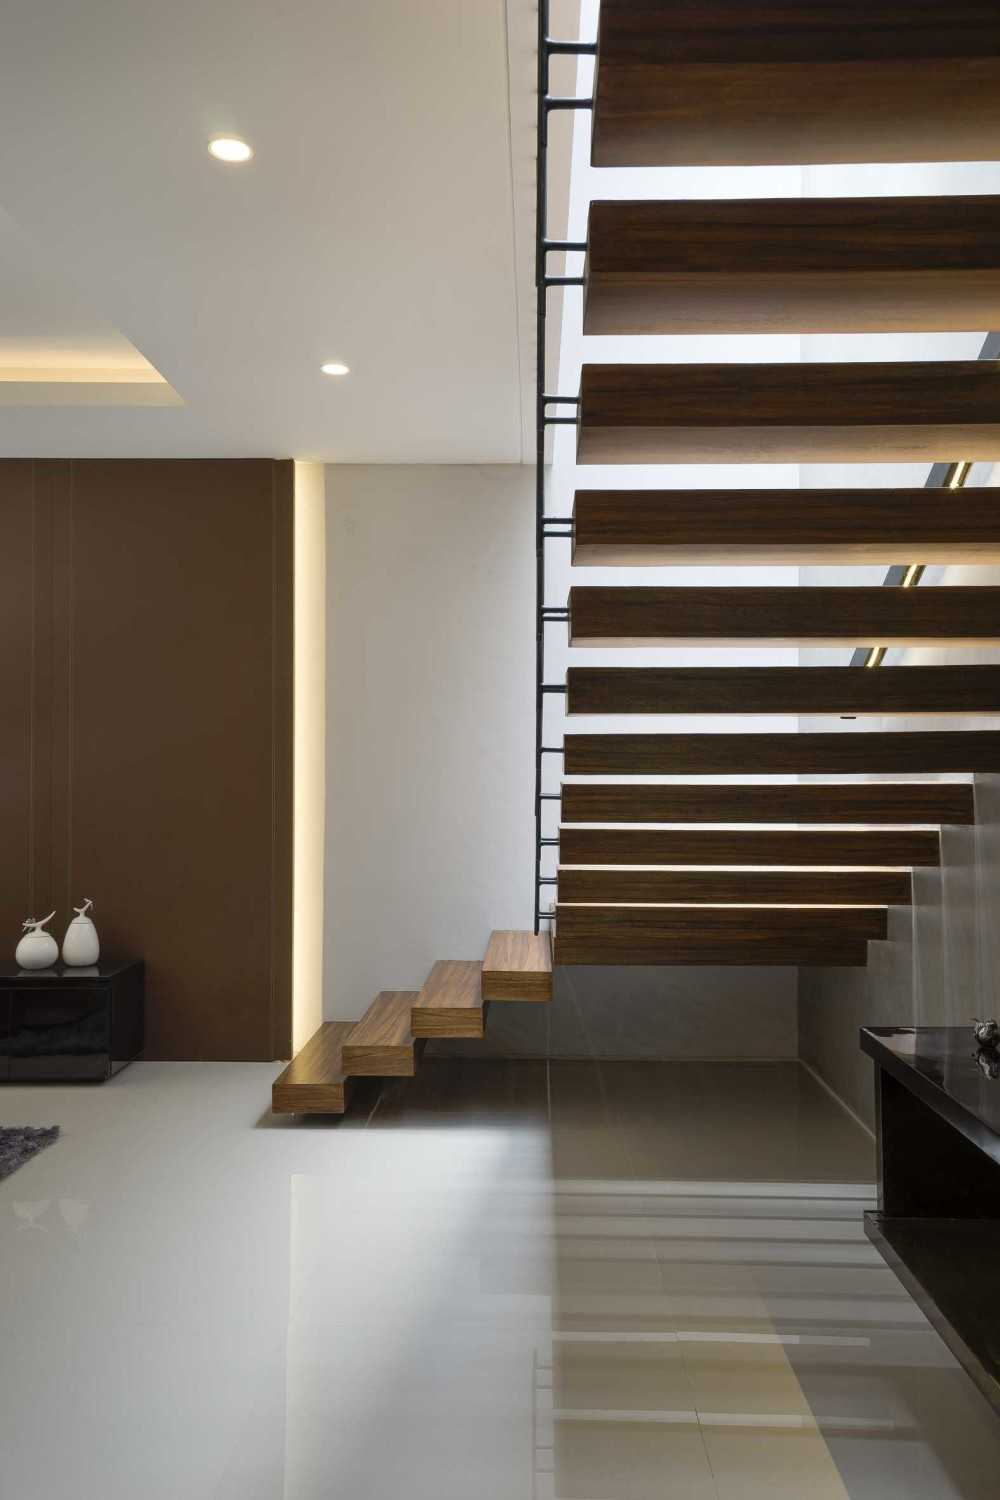 """Simple Projects Architecture """"s"""" House Pakuwon Indah, Surabaya - Indonesia Pakuwon Indah, Surabaya - Indonesia Staircase  32989"""